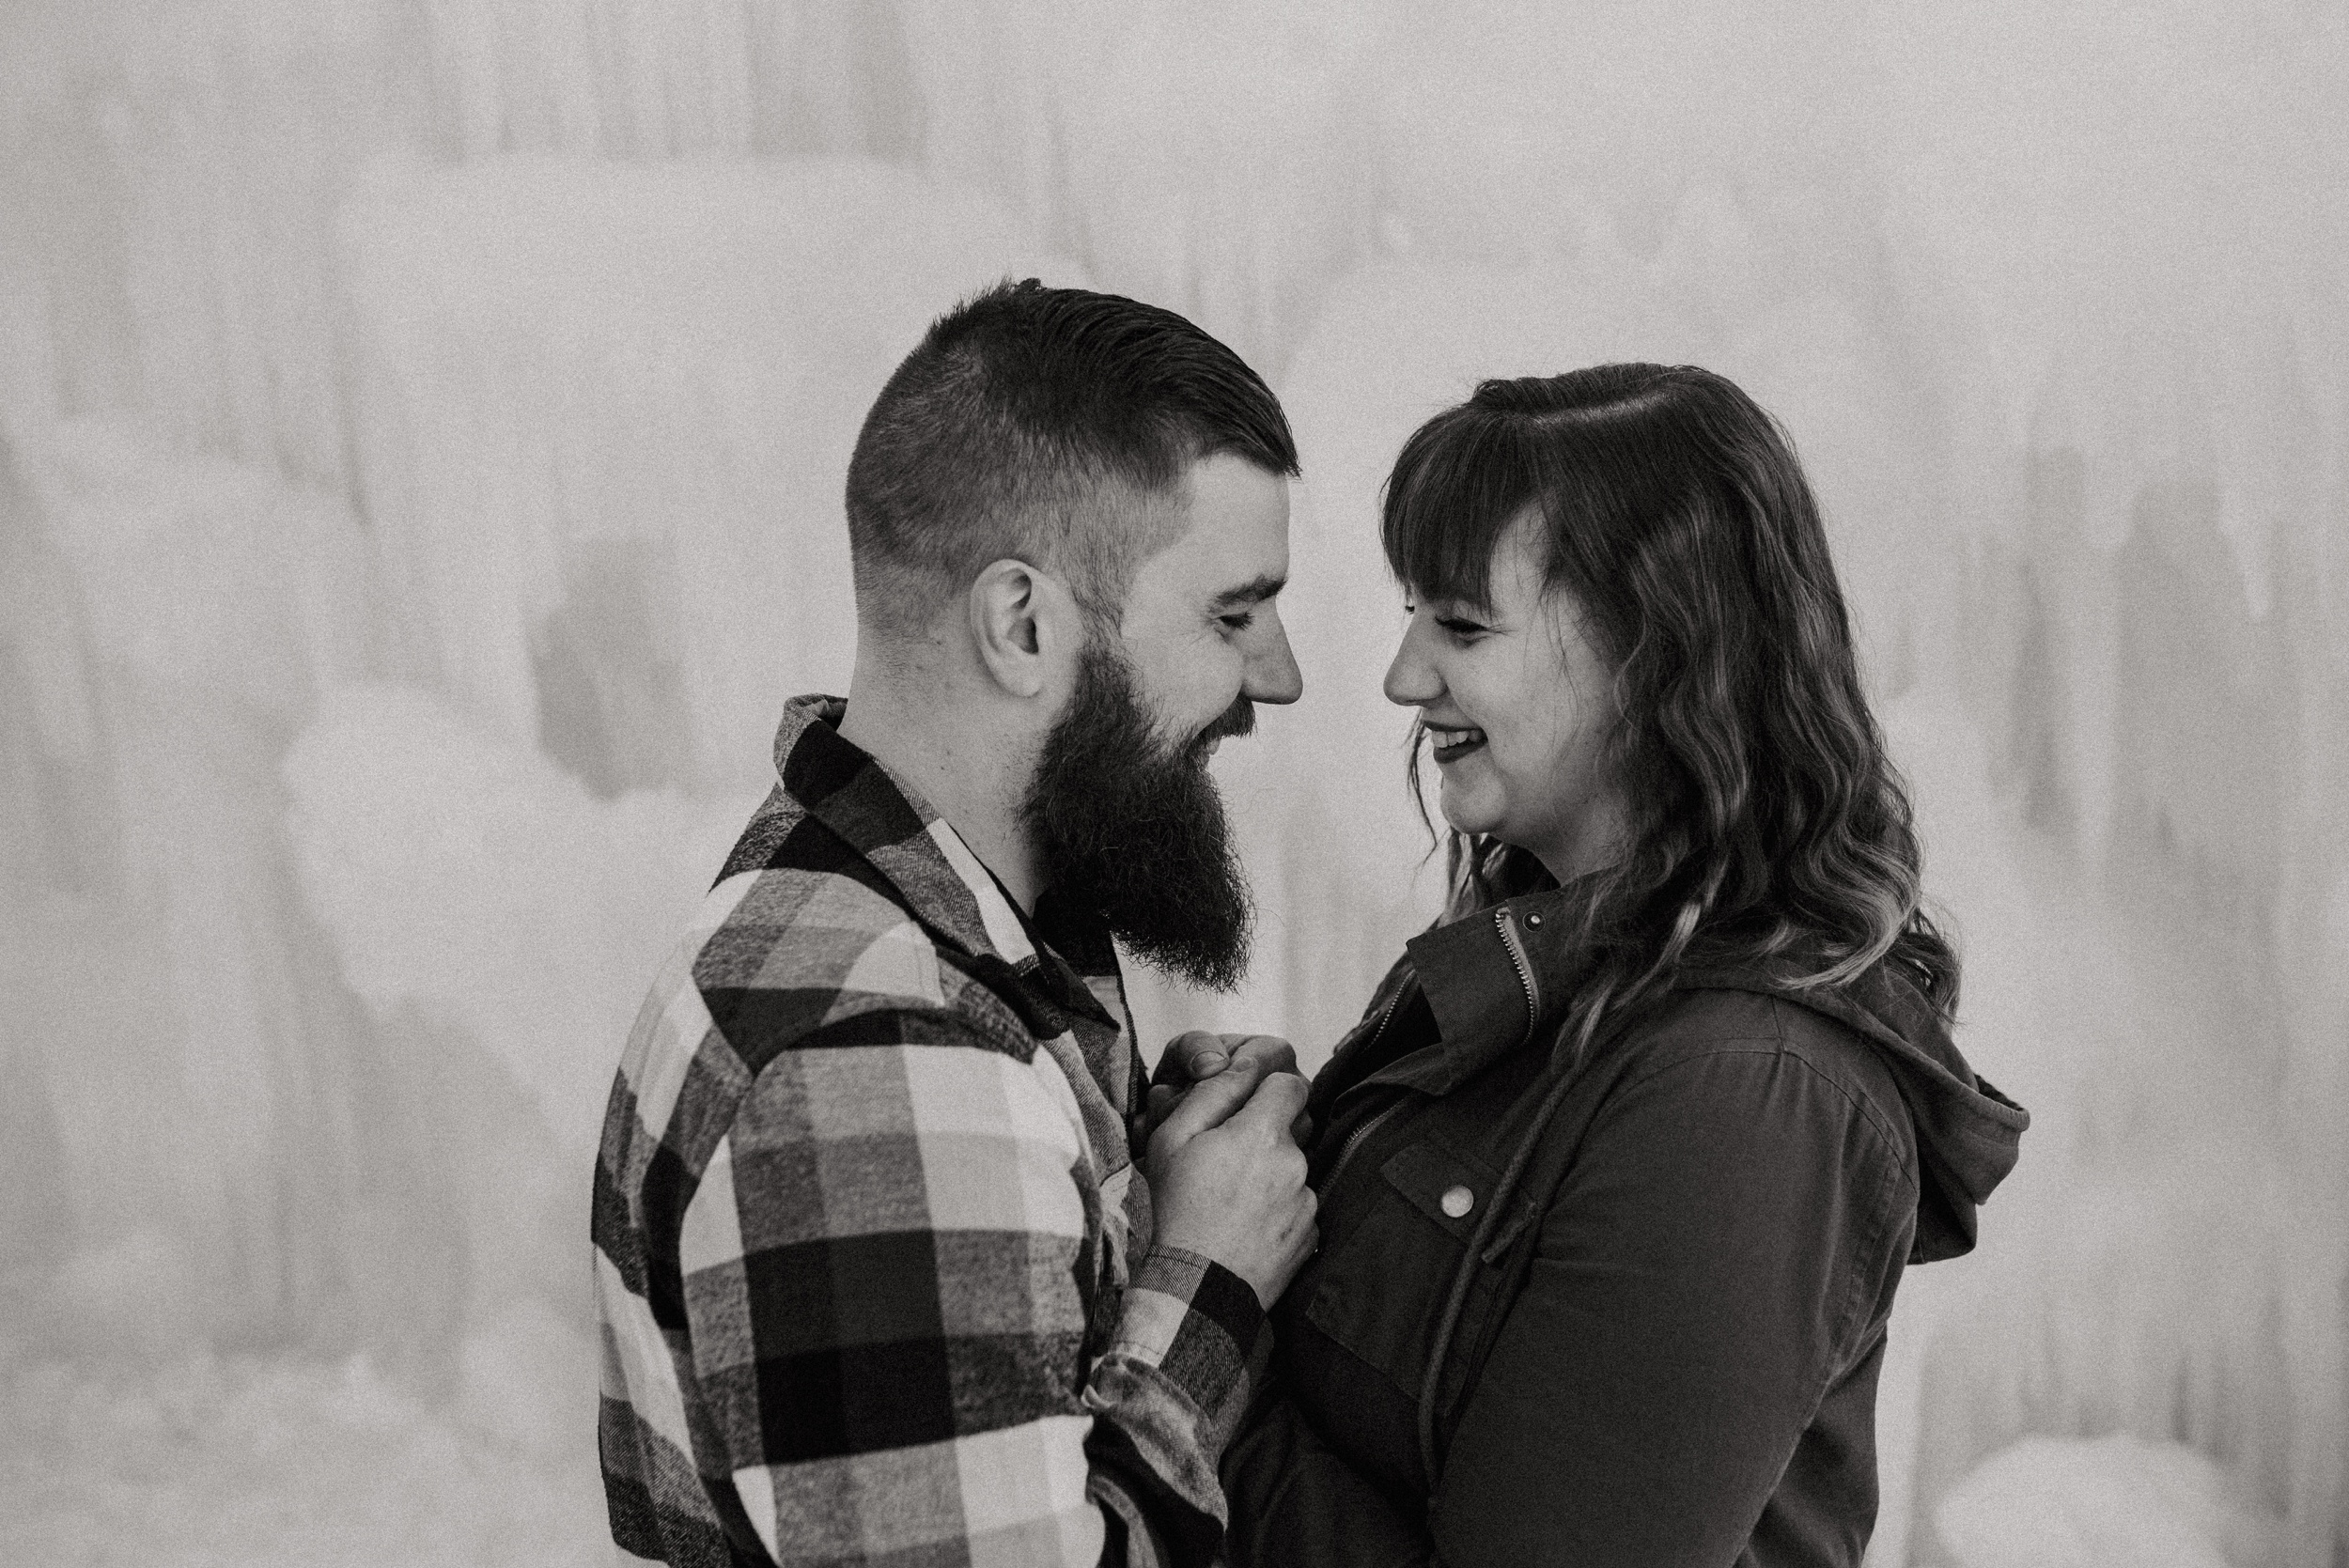 ice-castles-nh-engagement-session-boston-wedding-photographer-vanessa-alves-photography9.jpg